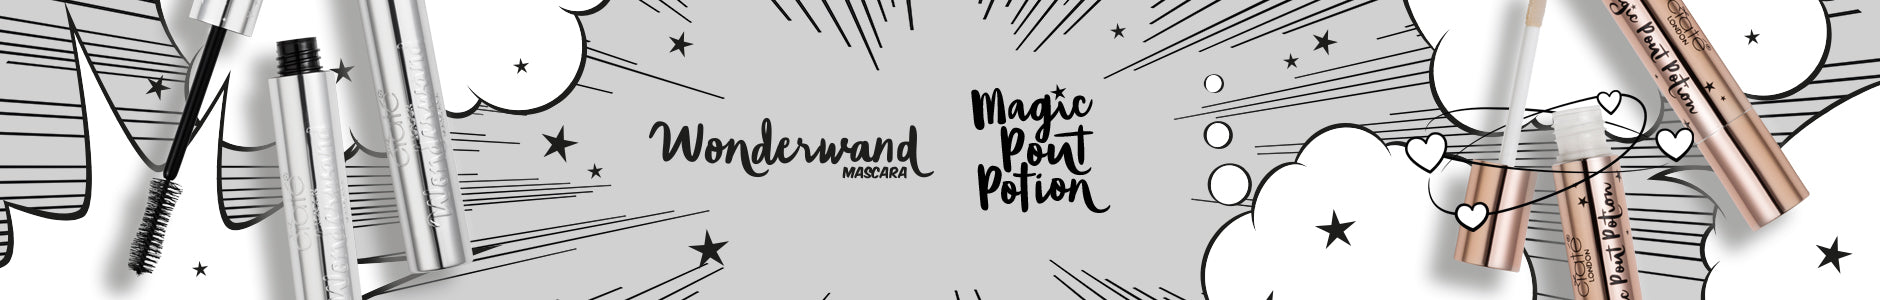 Wonderwand Mascara and Magic Pout Potion